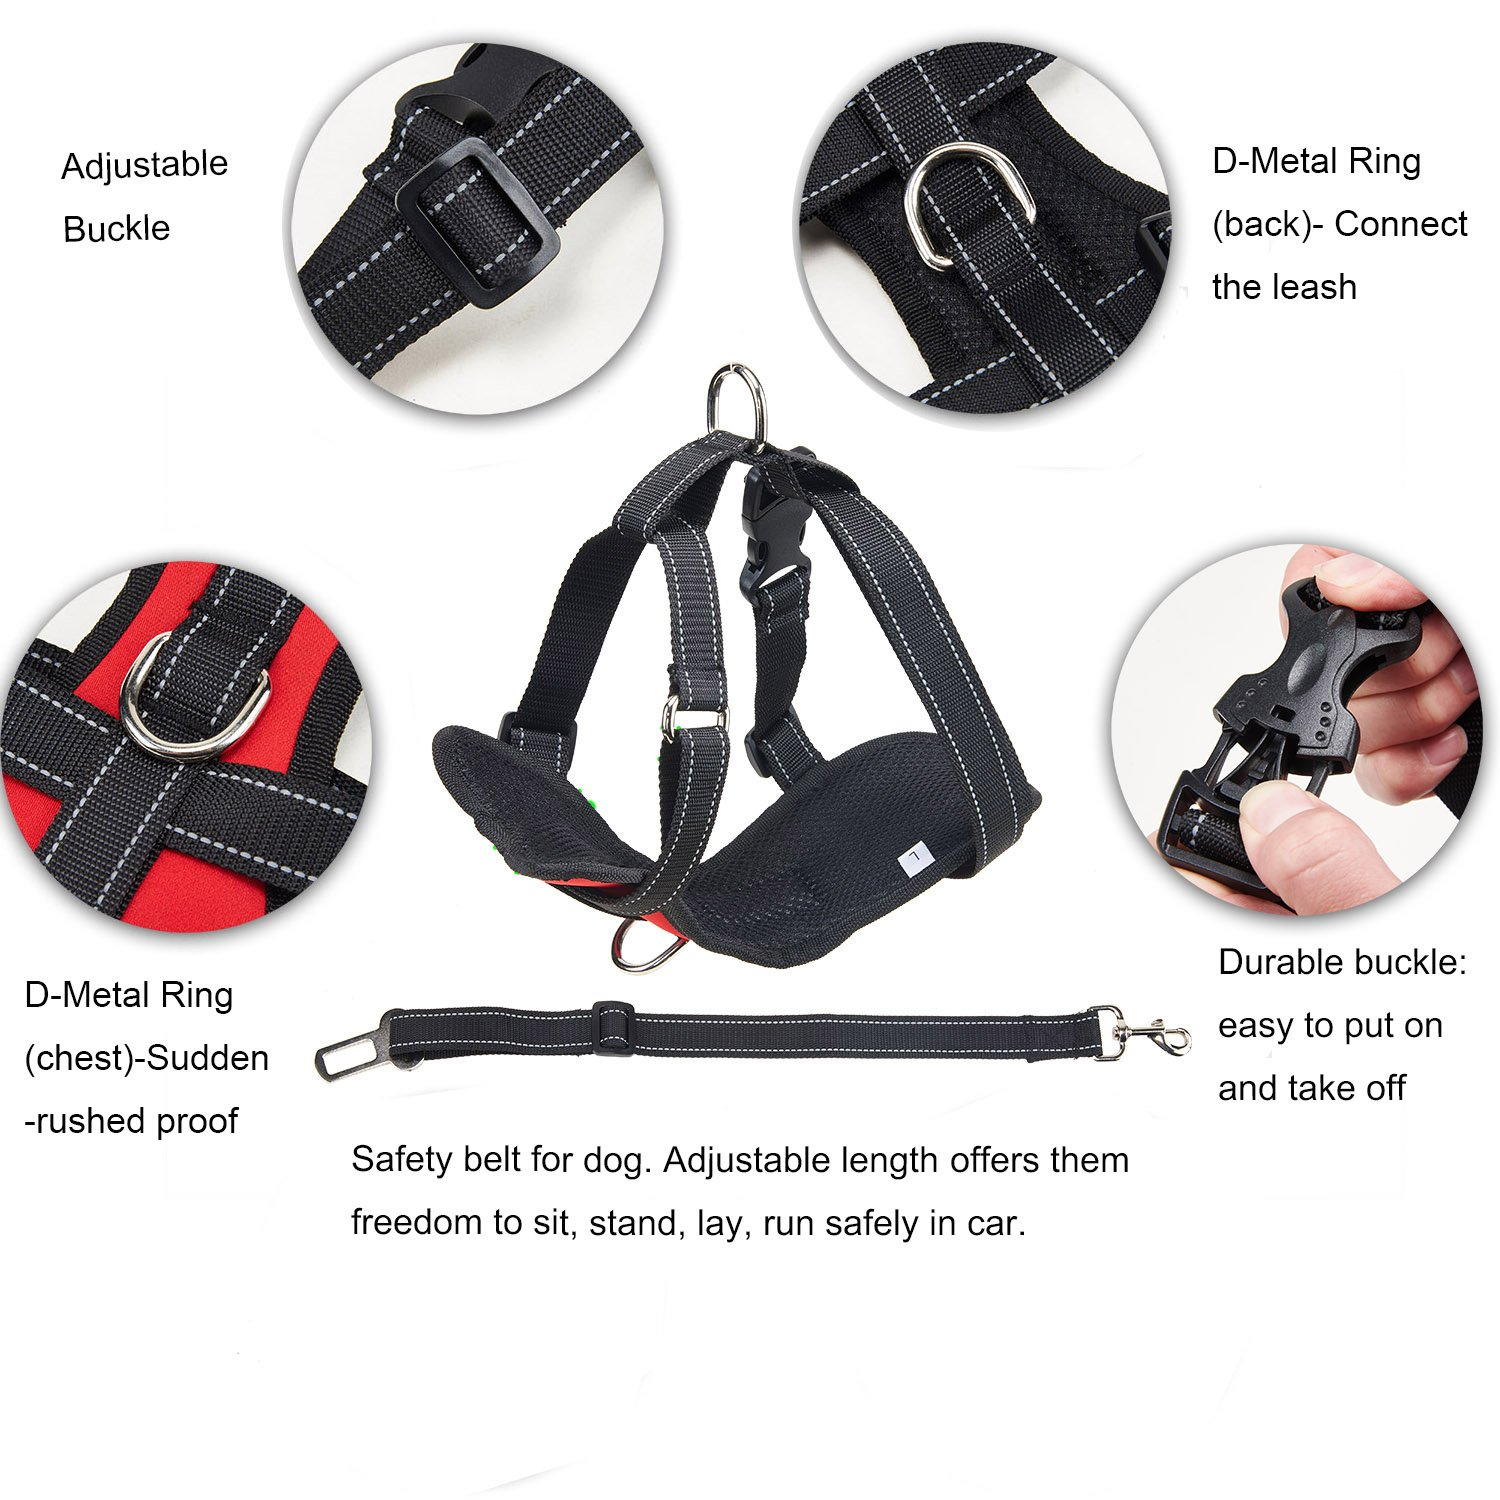 Durable Neoprene Fabric and Soft Padded Mesh for Vehicle Dog Walking Vest Harness Travel Outdoor Kaka mall Pet Dog Car Safety Harness Black, L, 15-25 KG Dogs Adjustable Seat Belt Strap Lead Clip